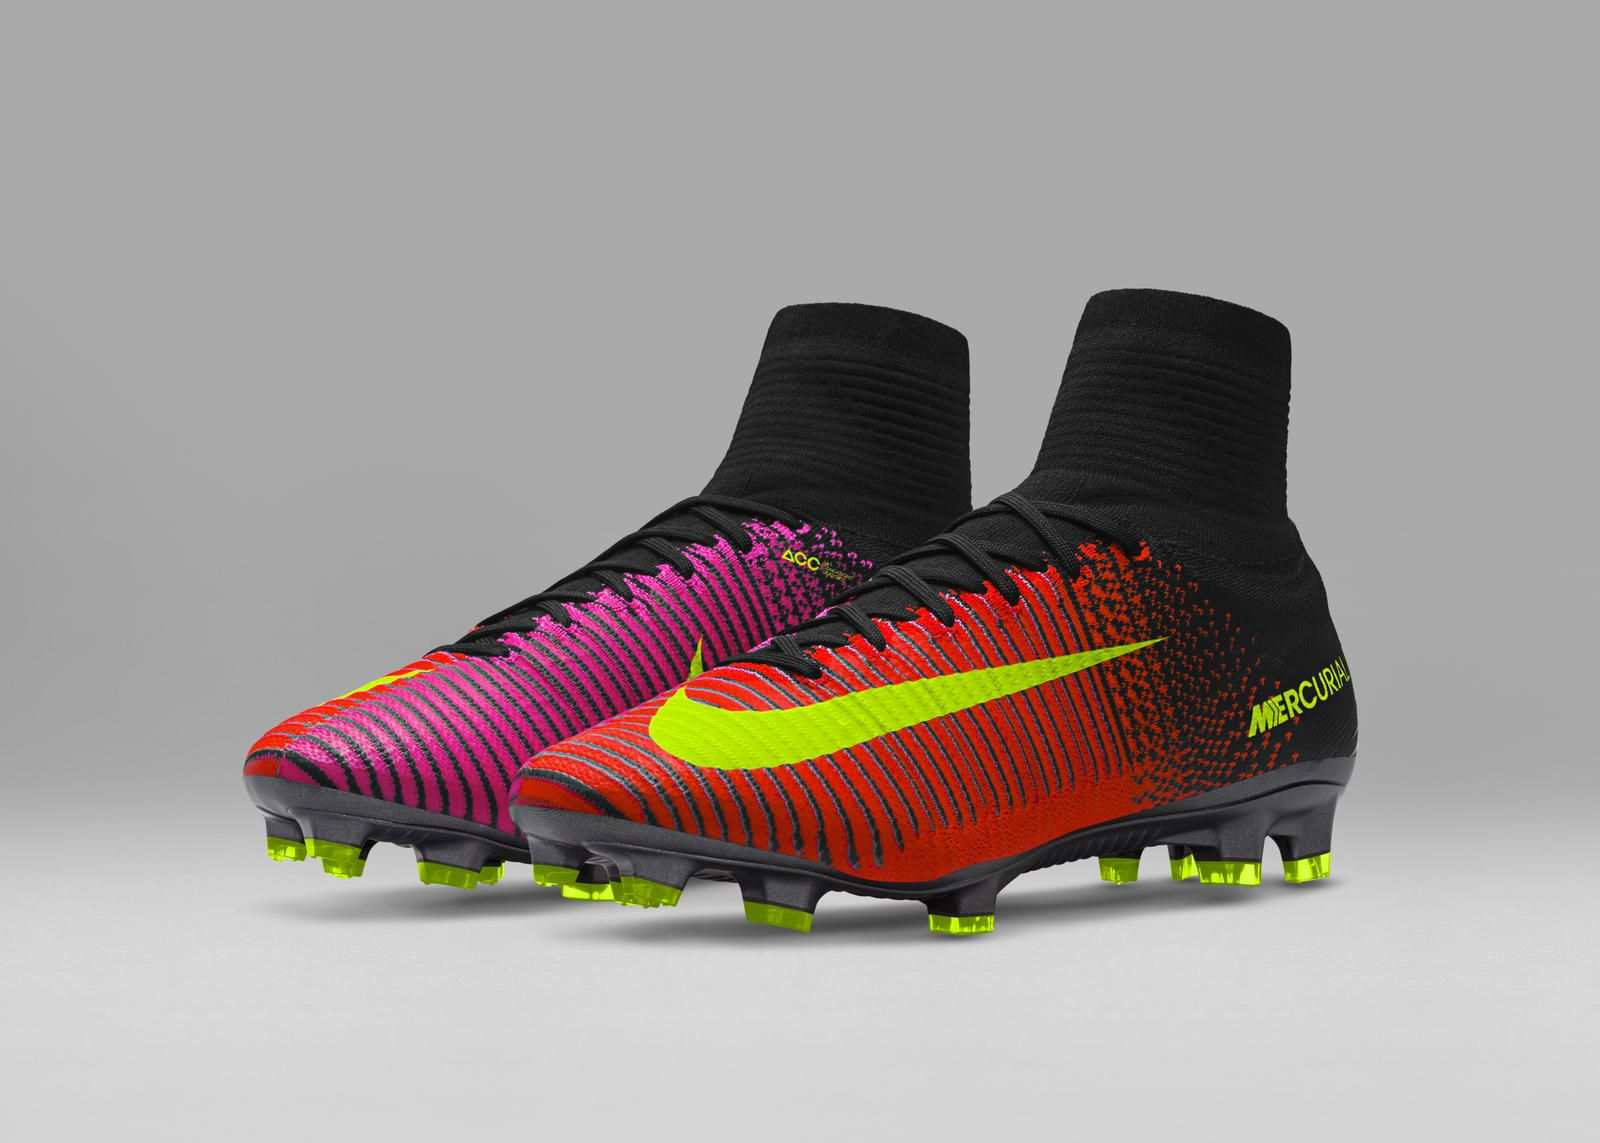 nike soccer cleat packs all red nike football cleats